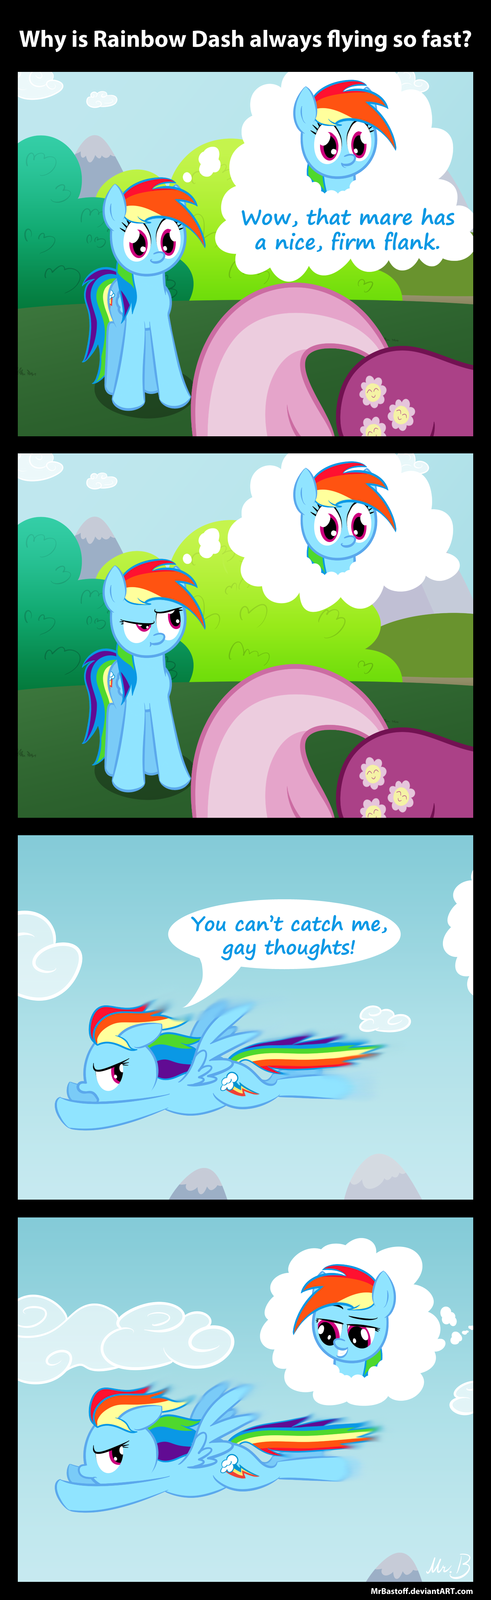 Why Rainbow Dash Is Flying So Fast